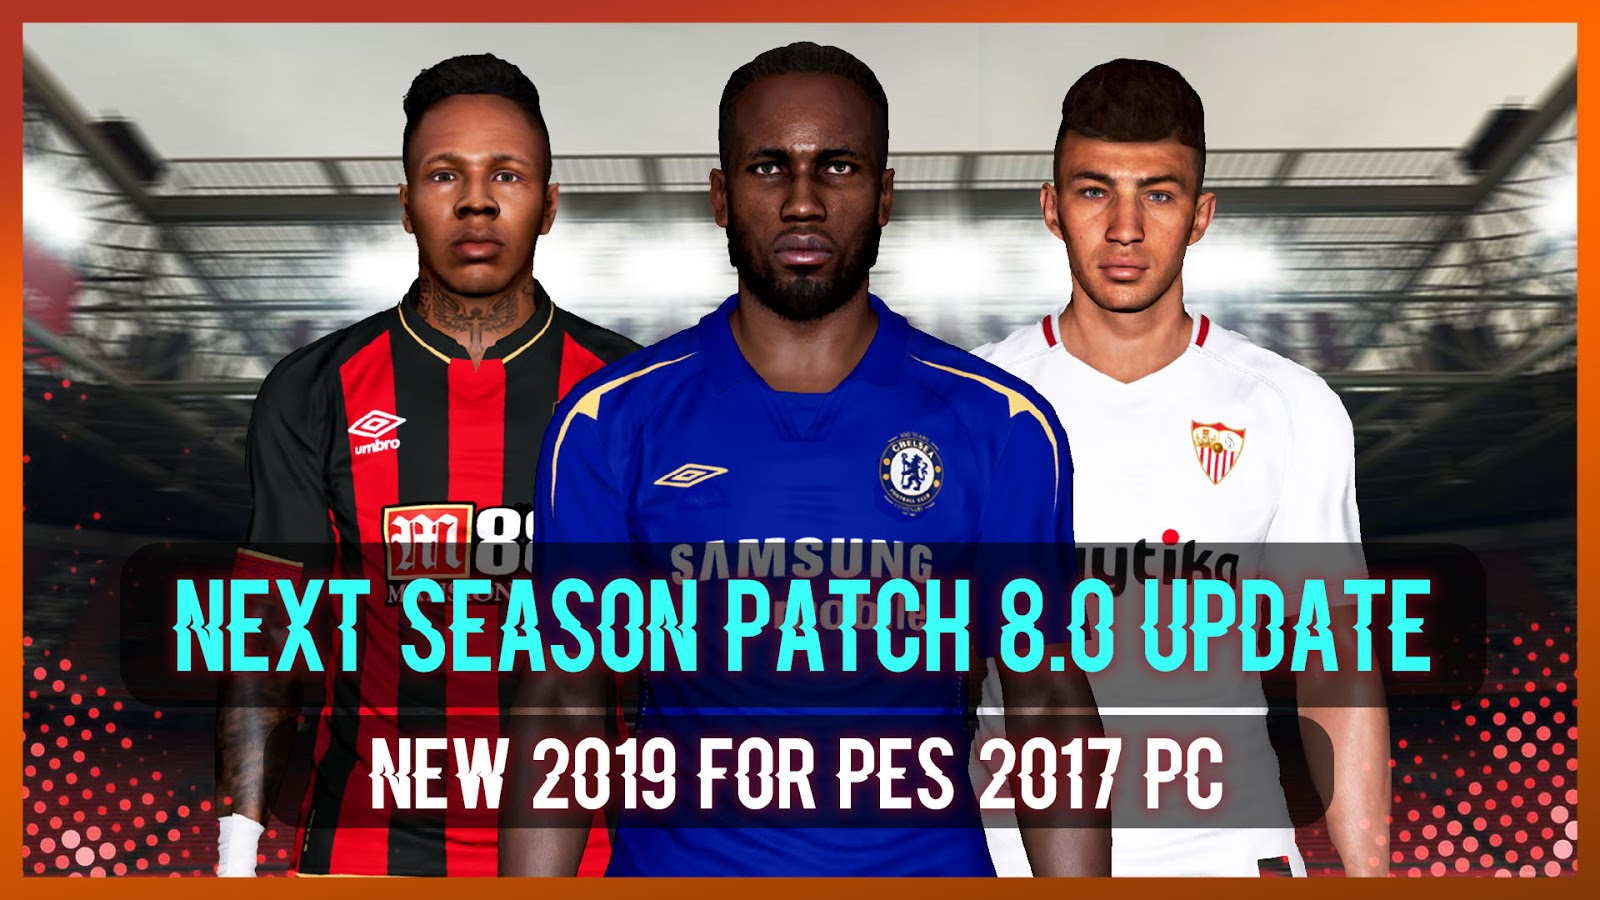 Download patch pes 2017 update 2019 pc | Peatix